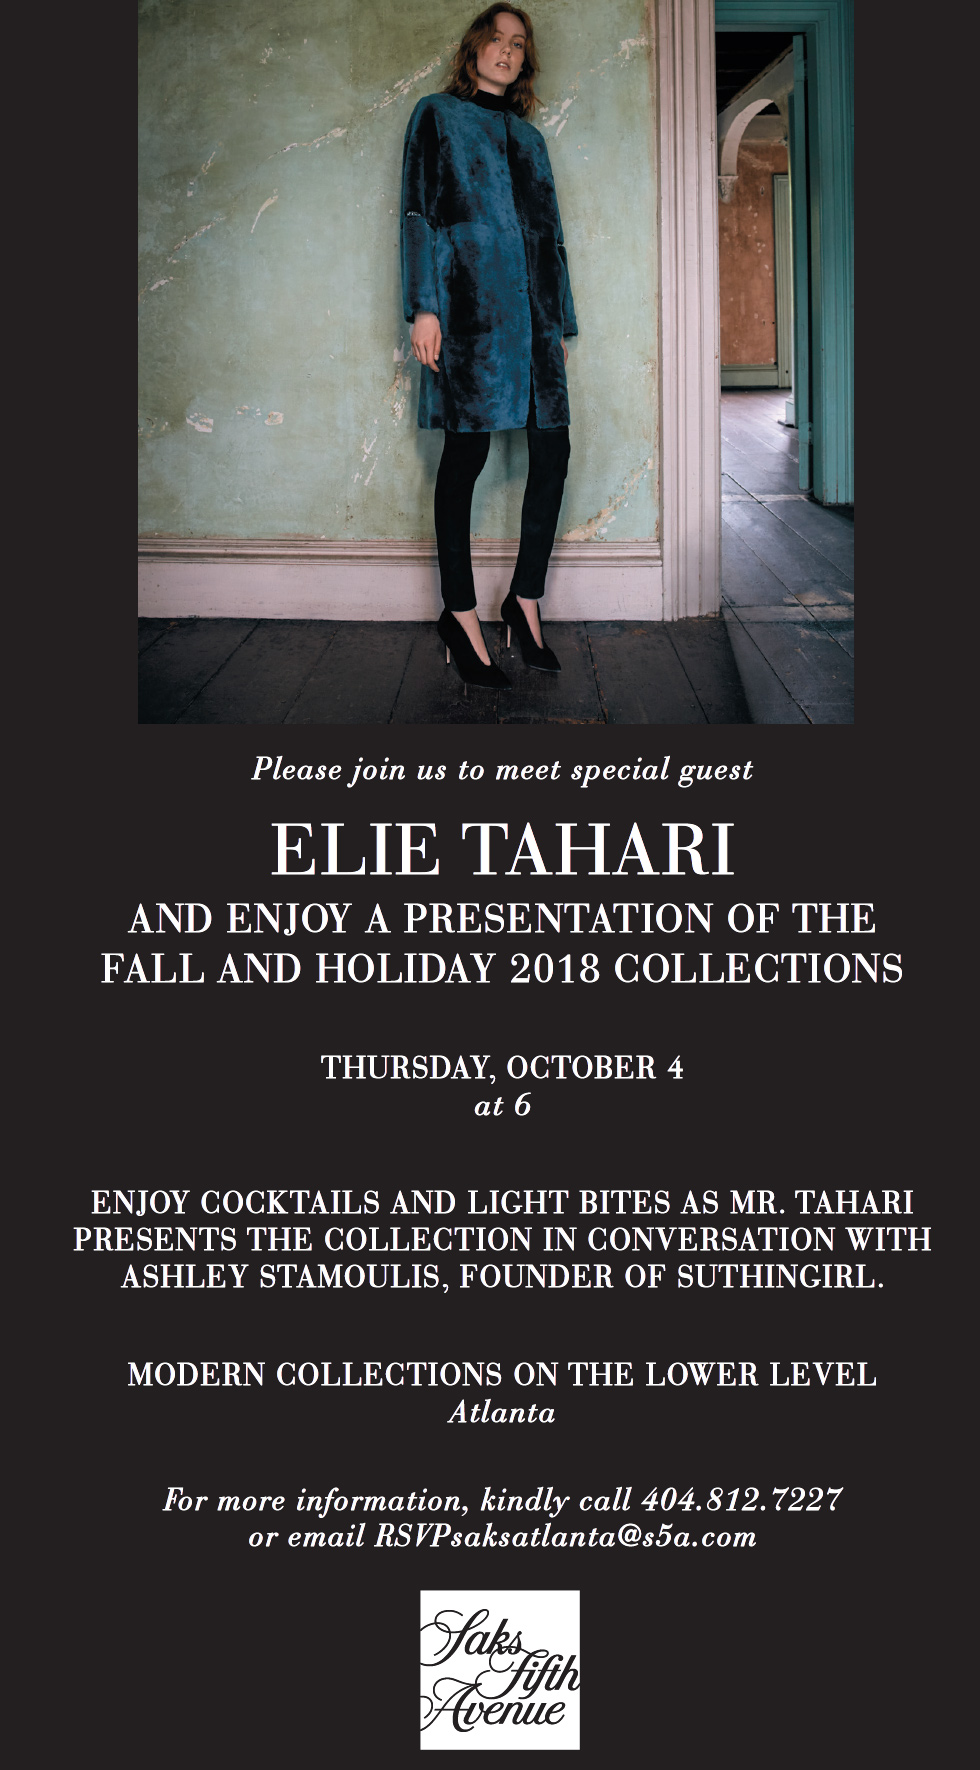 eli tahari fall and holiday 2018 collection